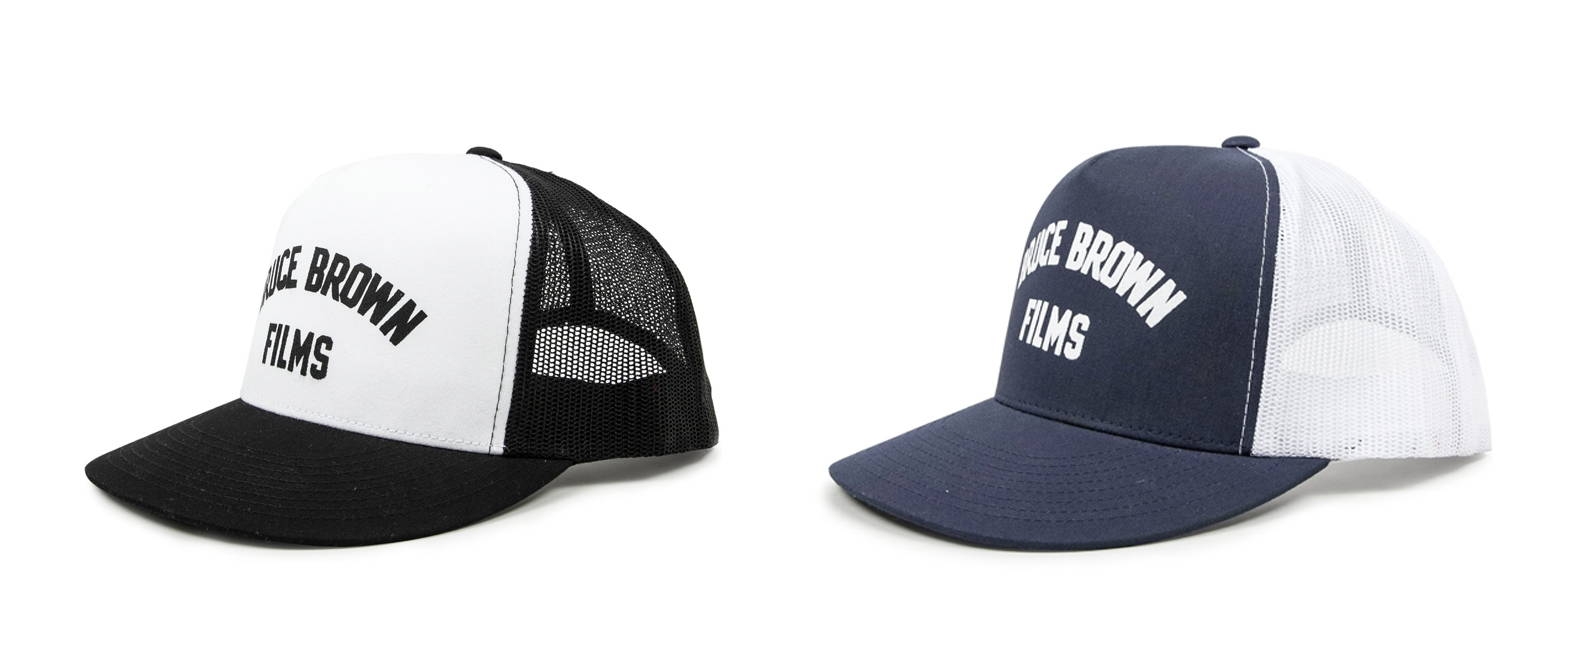 Iron & Resin X Bruce Brown Films BBF Trucker Hat in Black and Navy Color Options